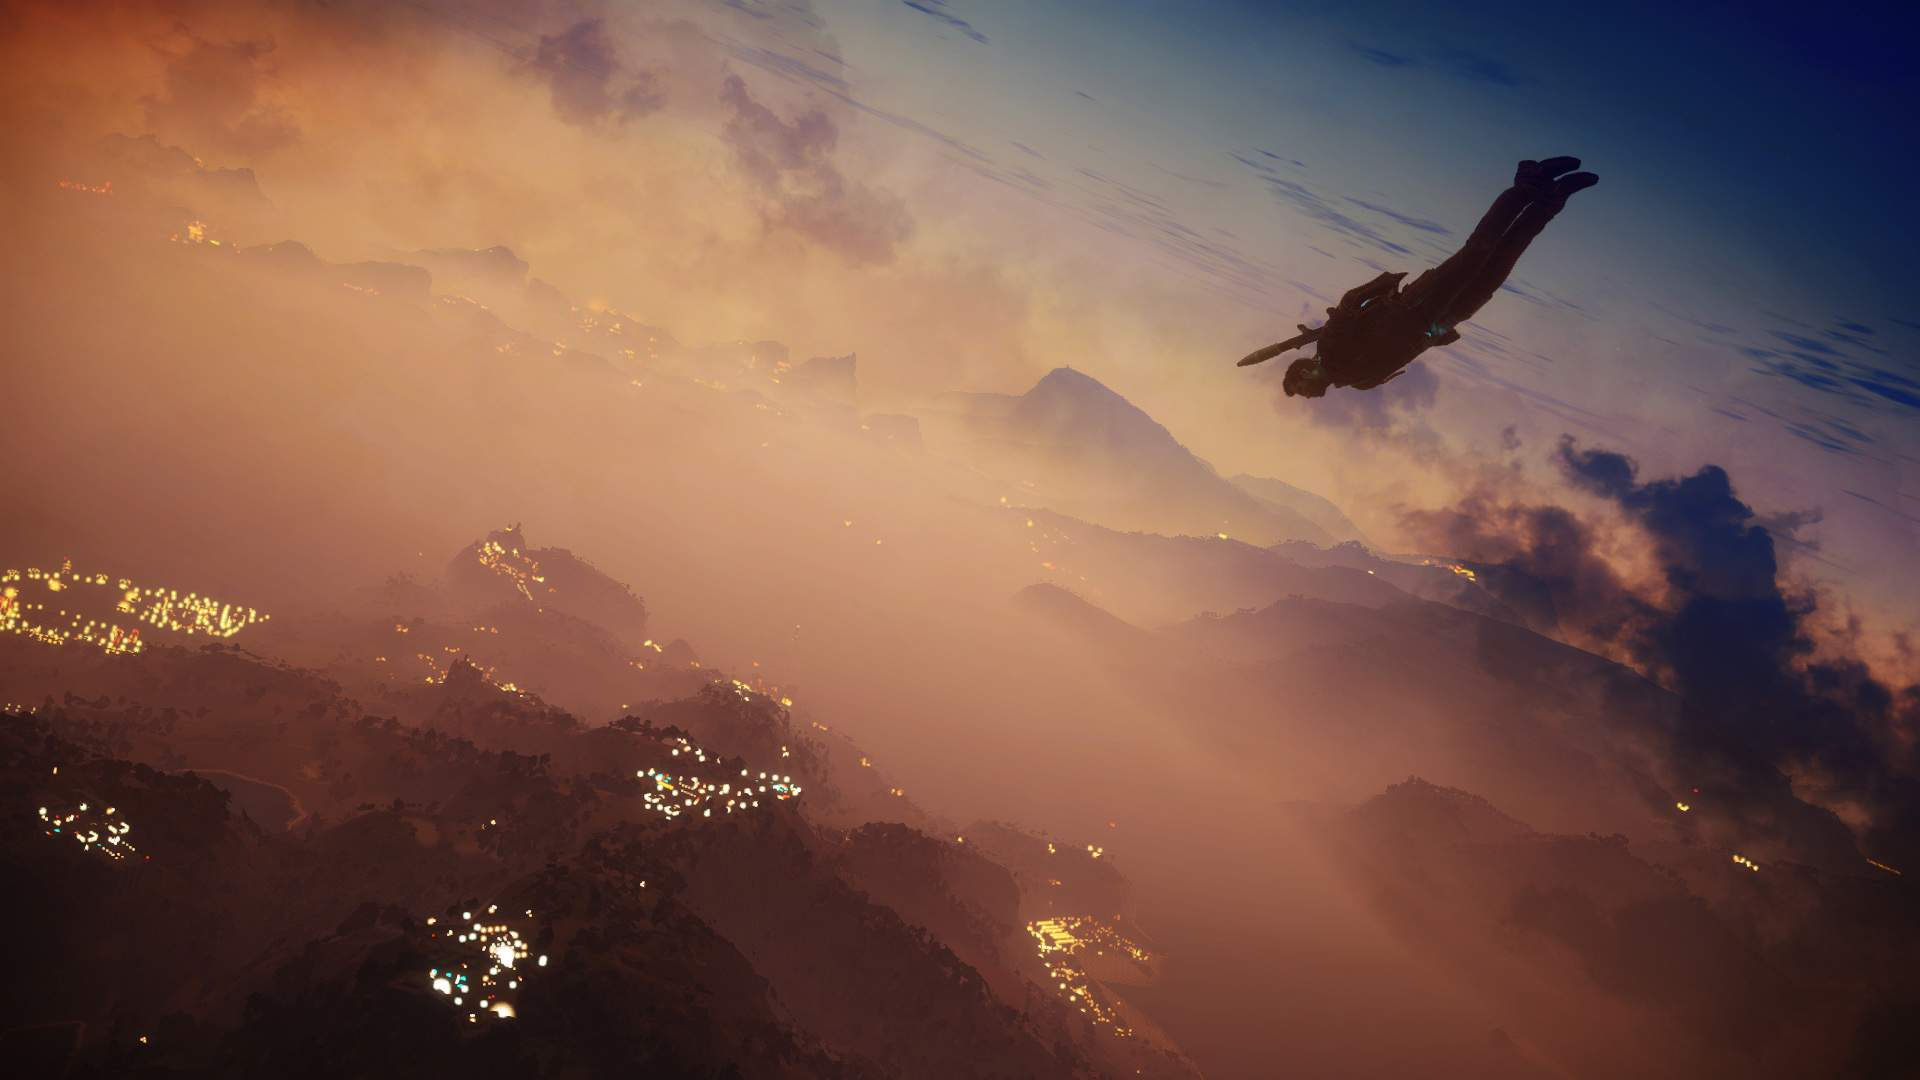 Rico Rodriguez dropping from the sky towards the ground during a sunset